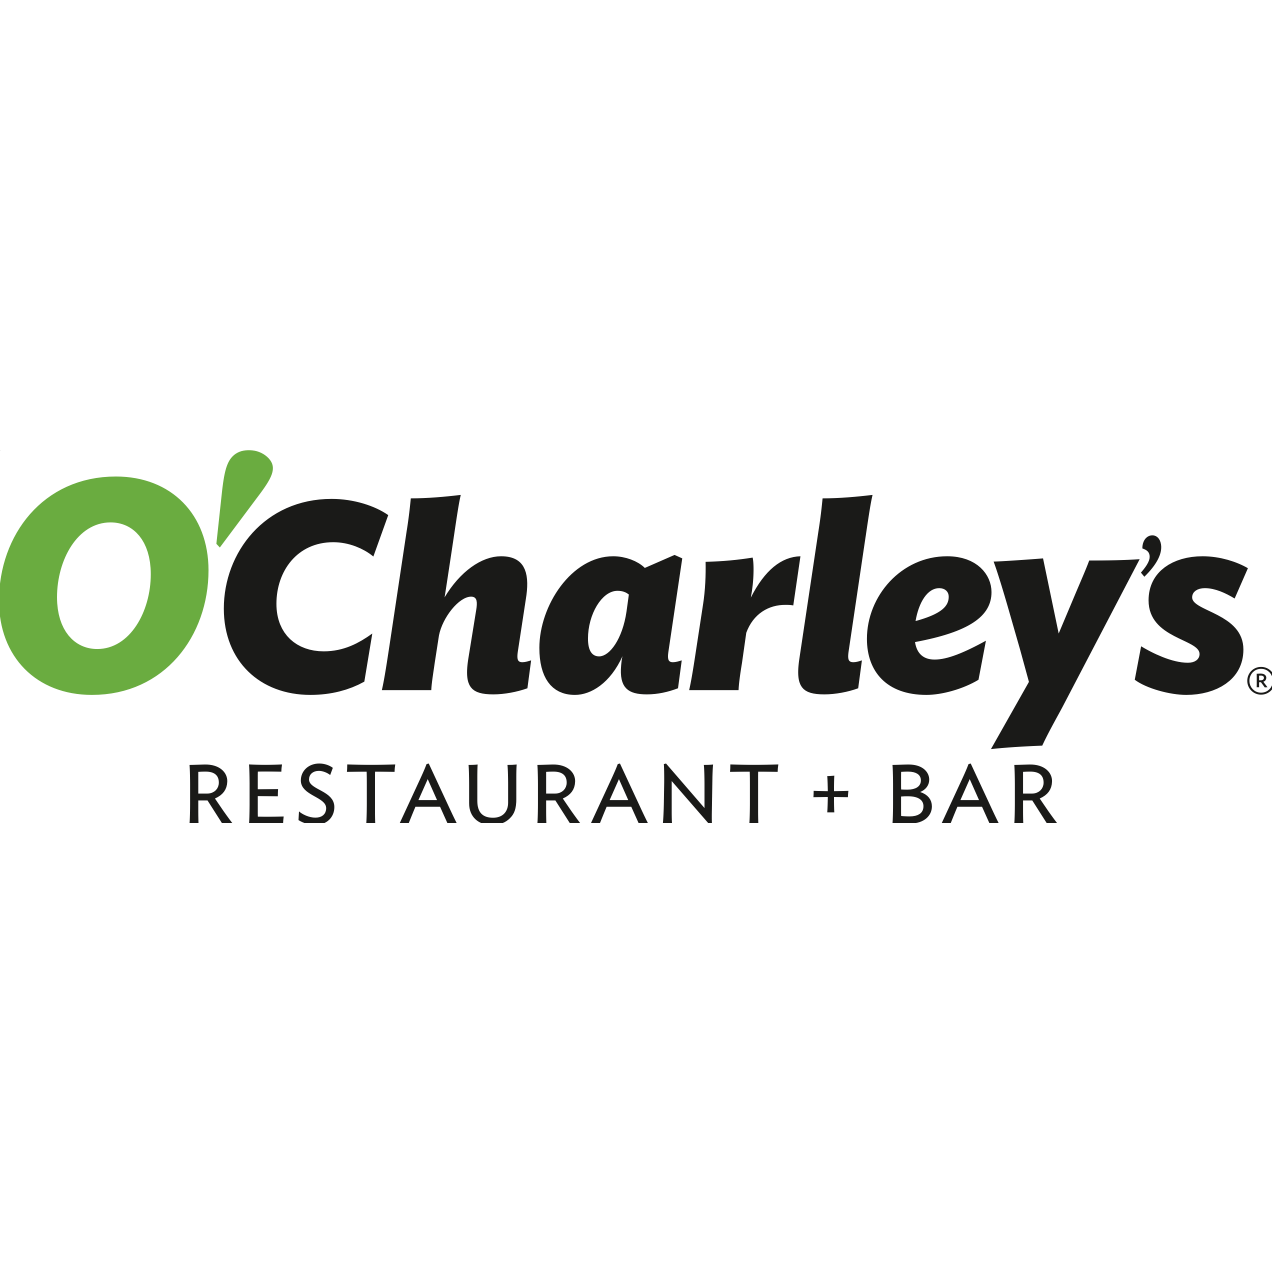 O'Charley's Restaurant & Bar - Jonesboro, AR - Restaurants